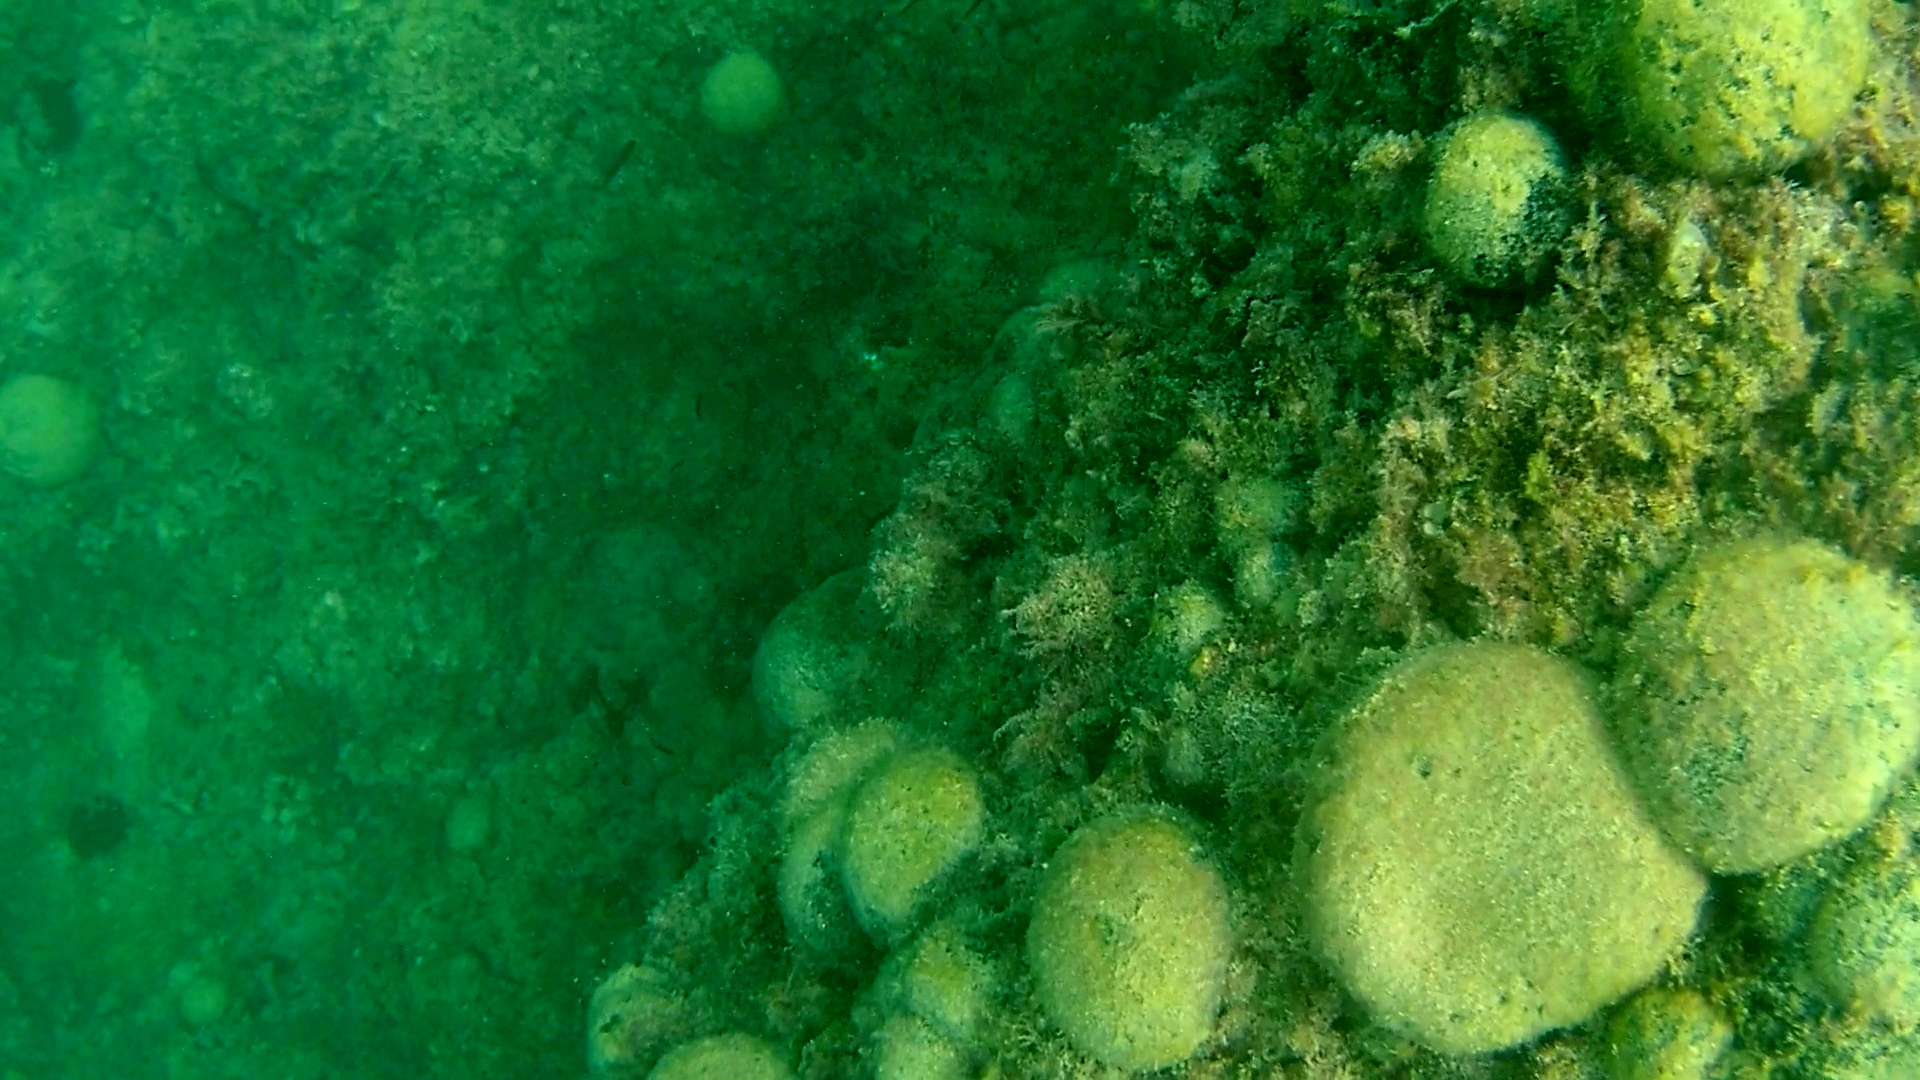 alga palla verde - seaweed green ball - codium bursa - intotheblue.it